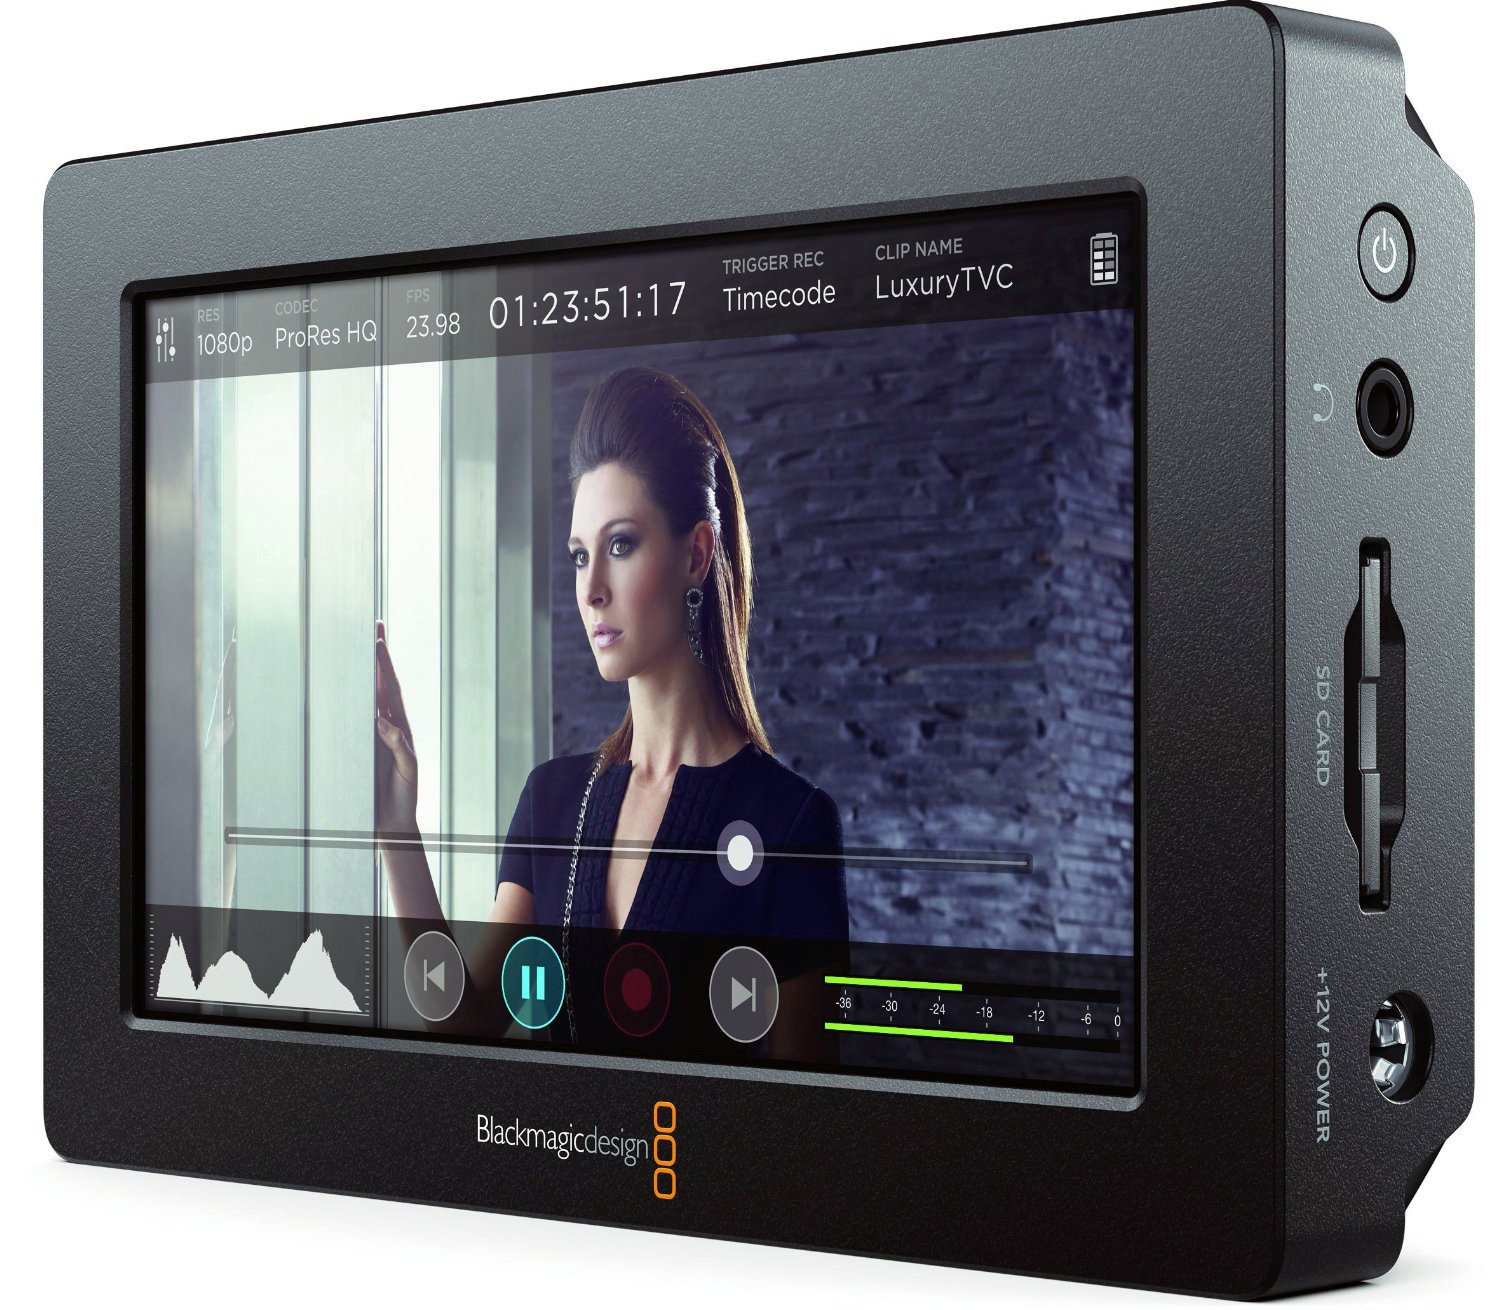 Blackmagic Design Video Assist HDMI/6G-SDI Recorder by Blackmagic Design